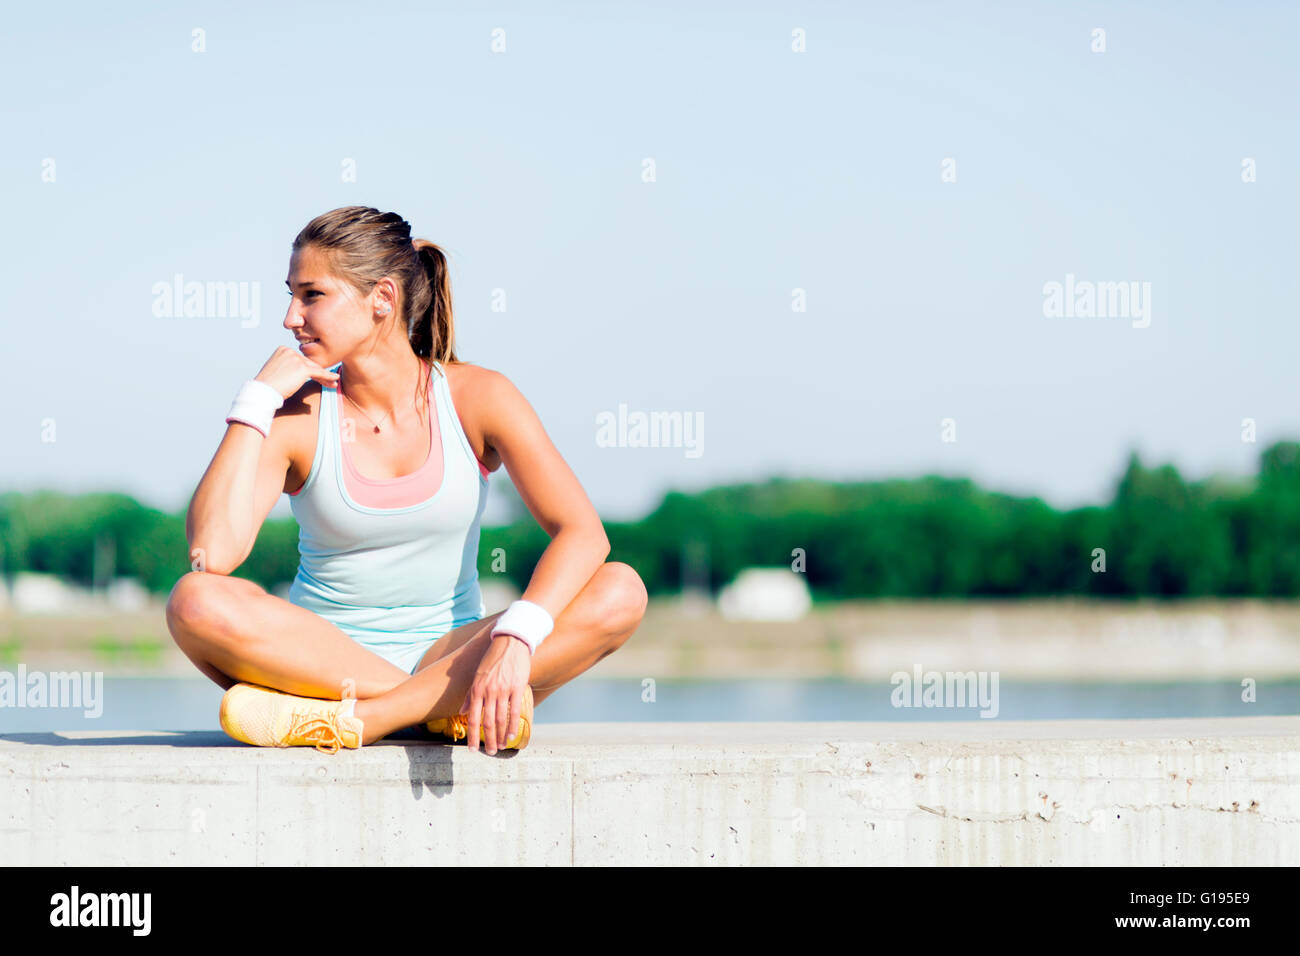 Young woman stretching and relaxing in the city before exercise - Stock Image